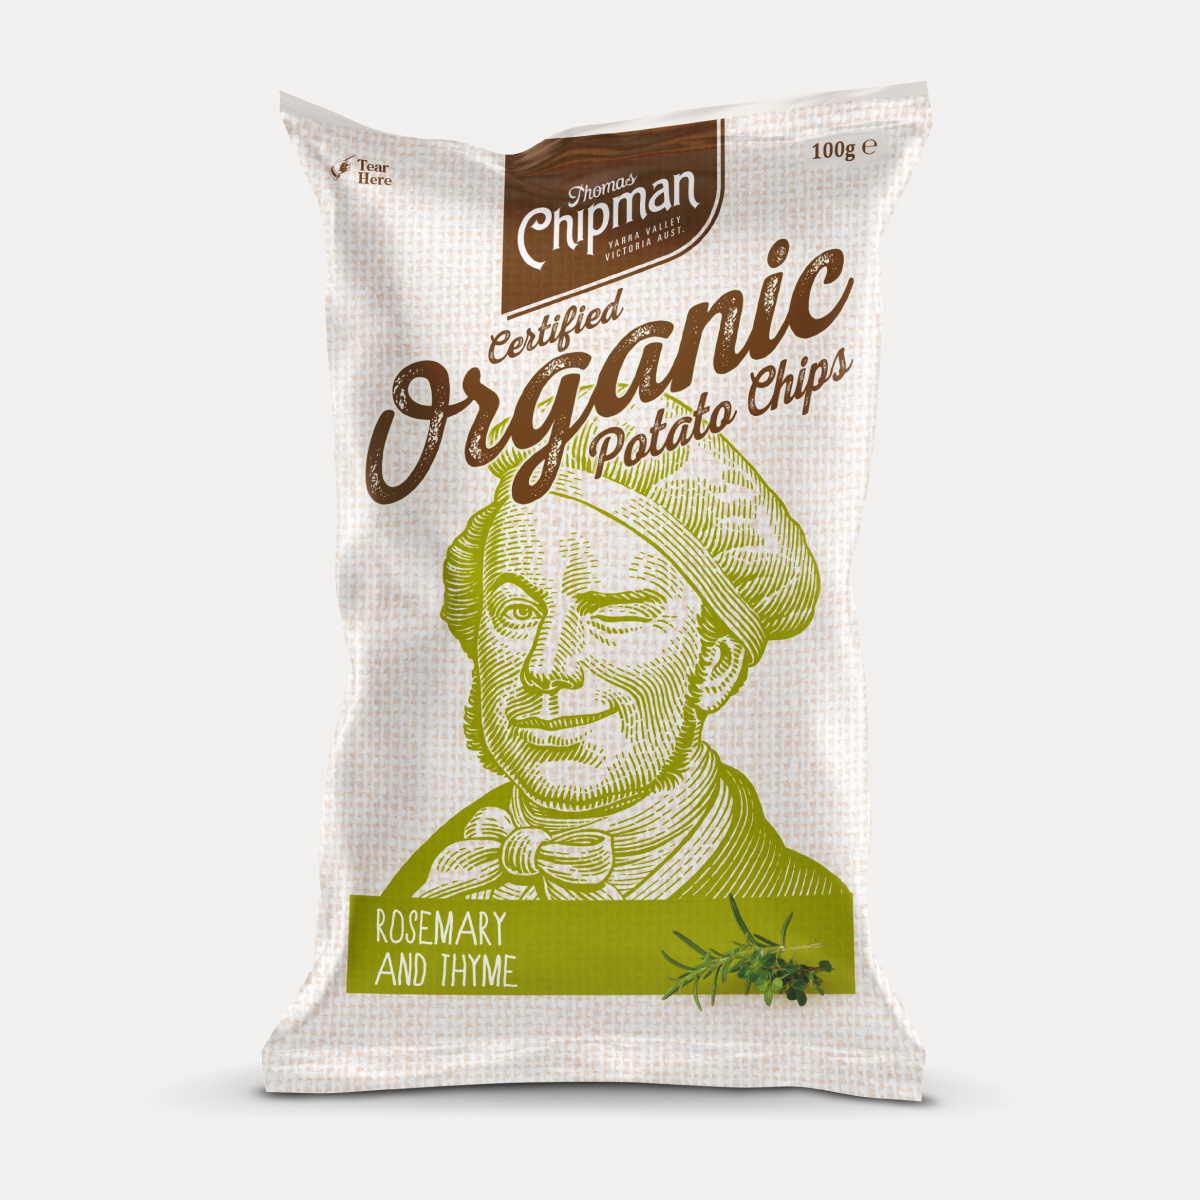 Davidson Branding FMCG Packaging Thomas Chipman Rosemary & Thyme Potato Chips